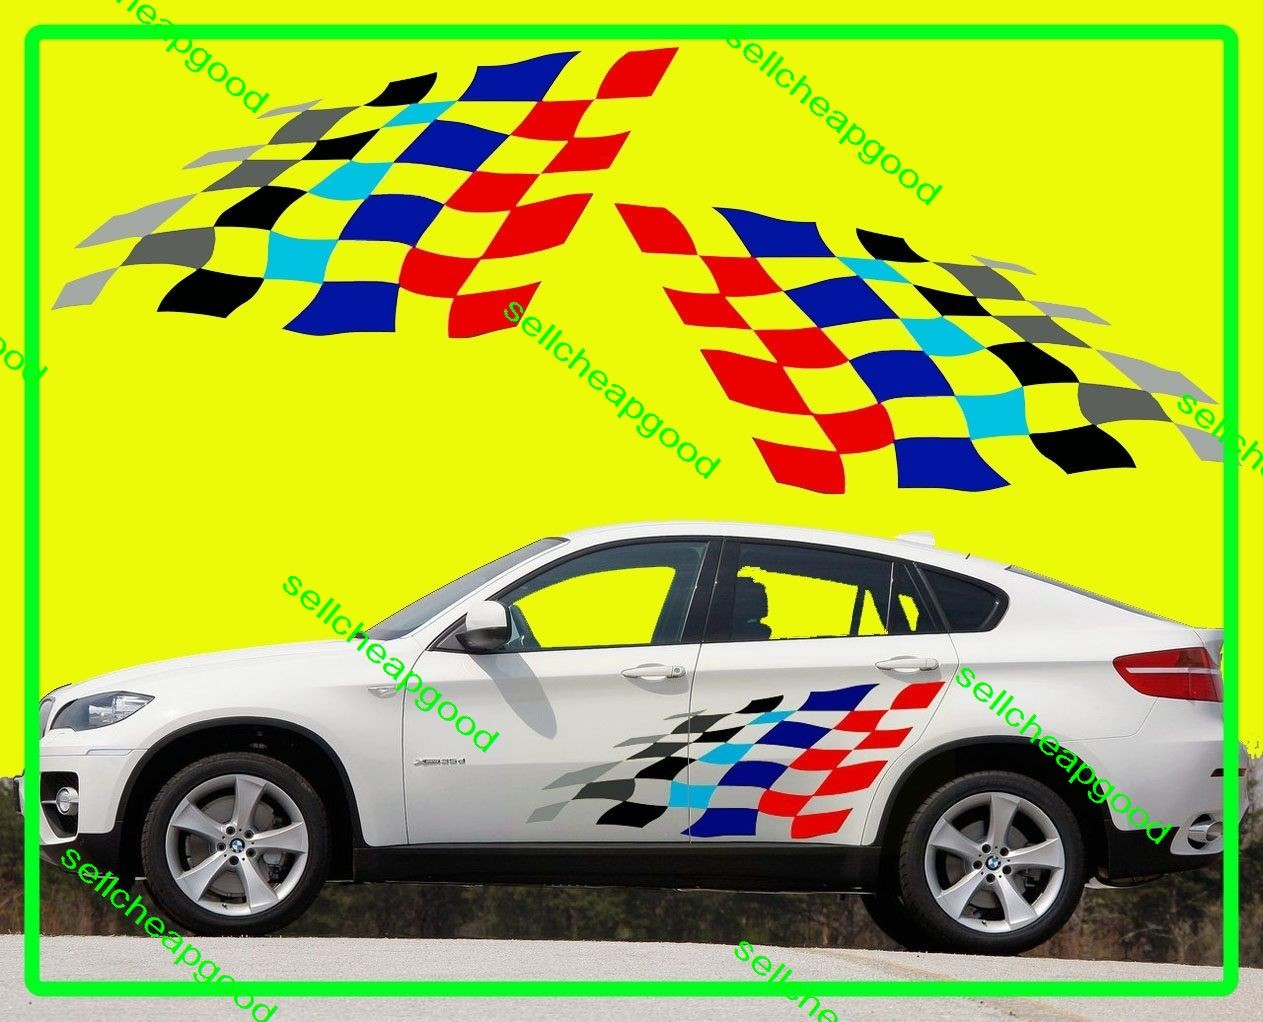 picture about Bmw Coupons Printable referred to as Checkered flag bmw discount codes - Chocolate chips discount coupons